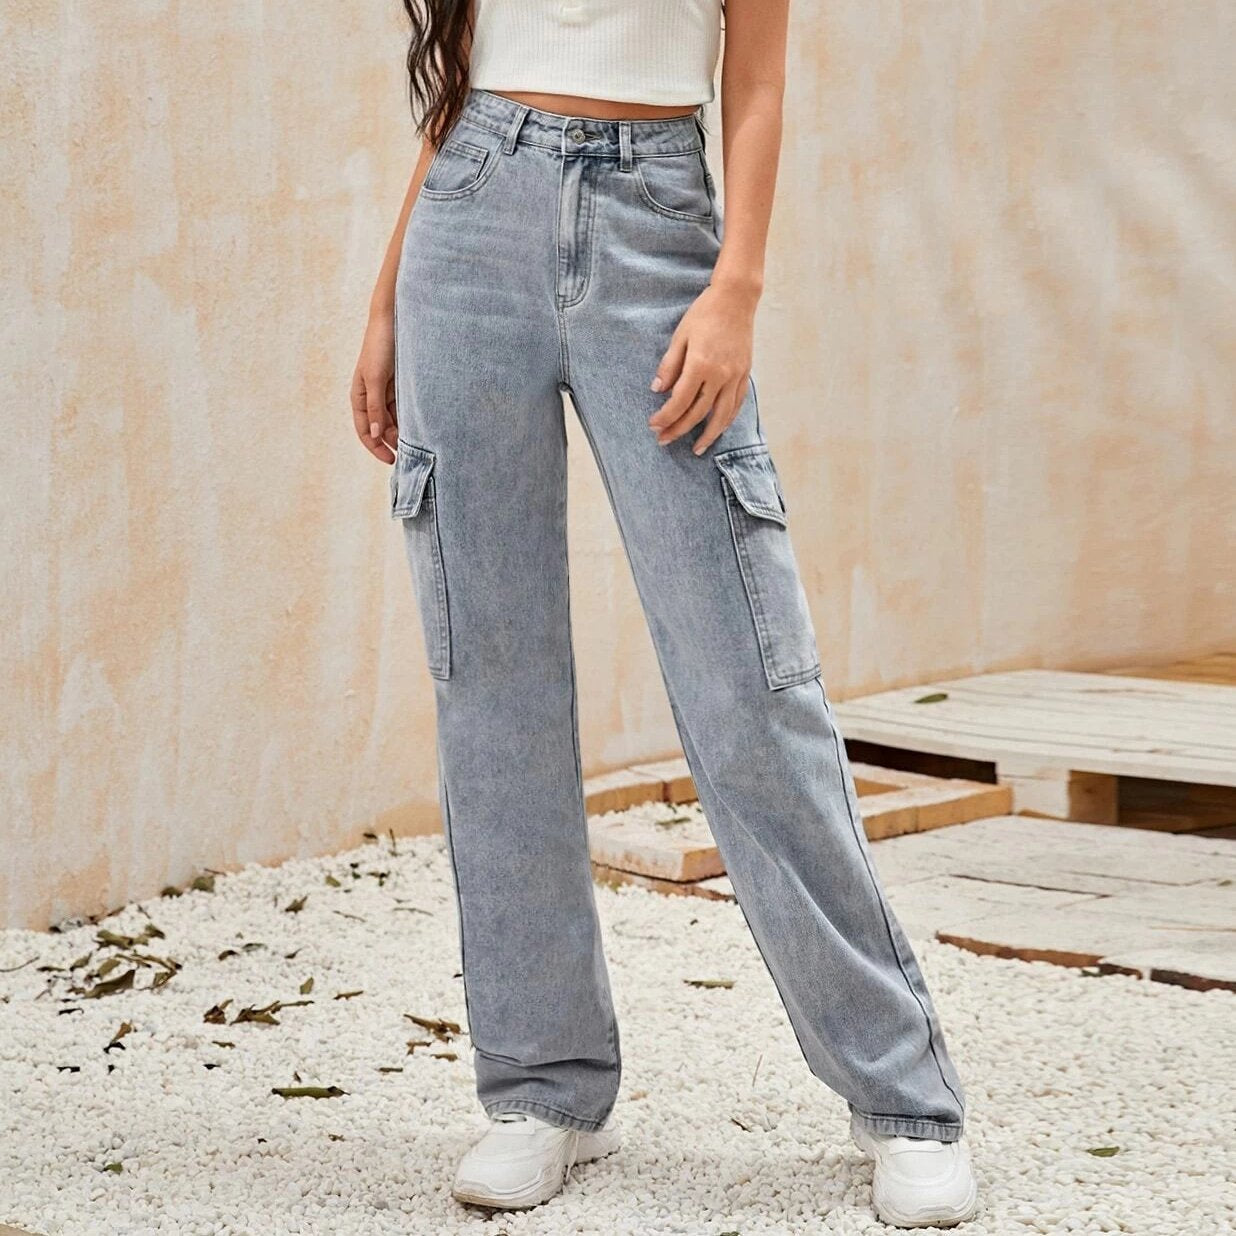 Casual Style Jeanshose